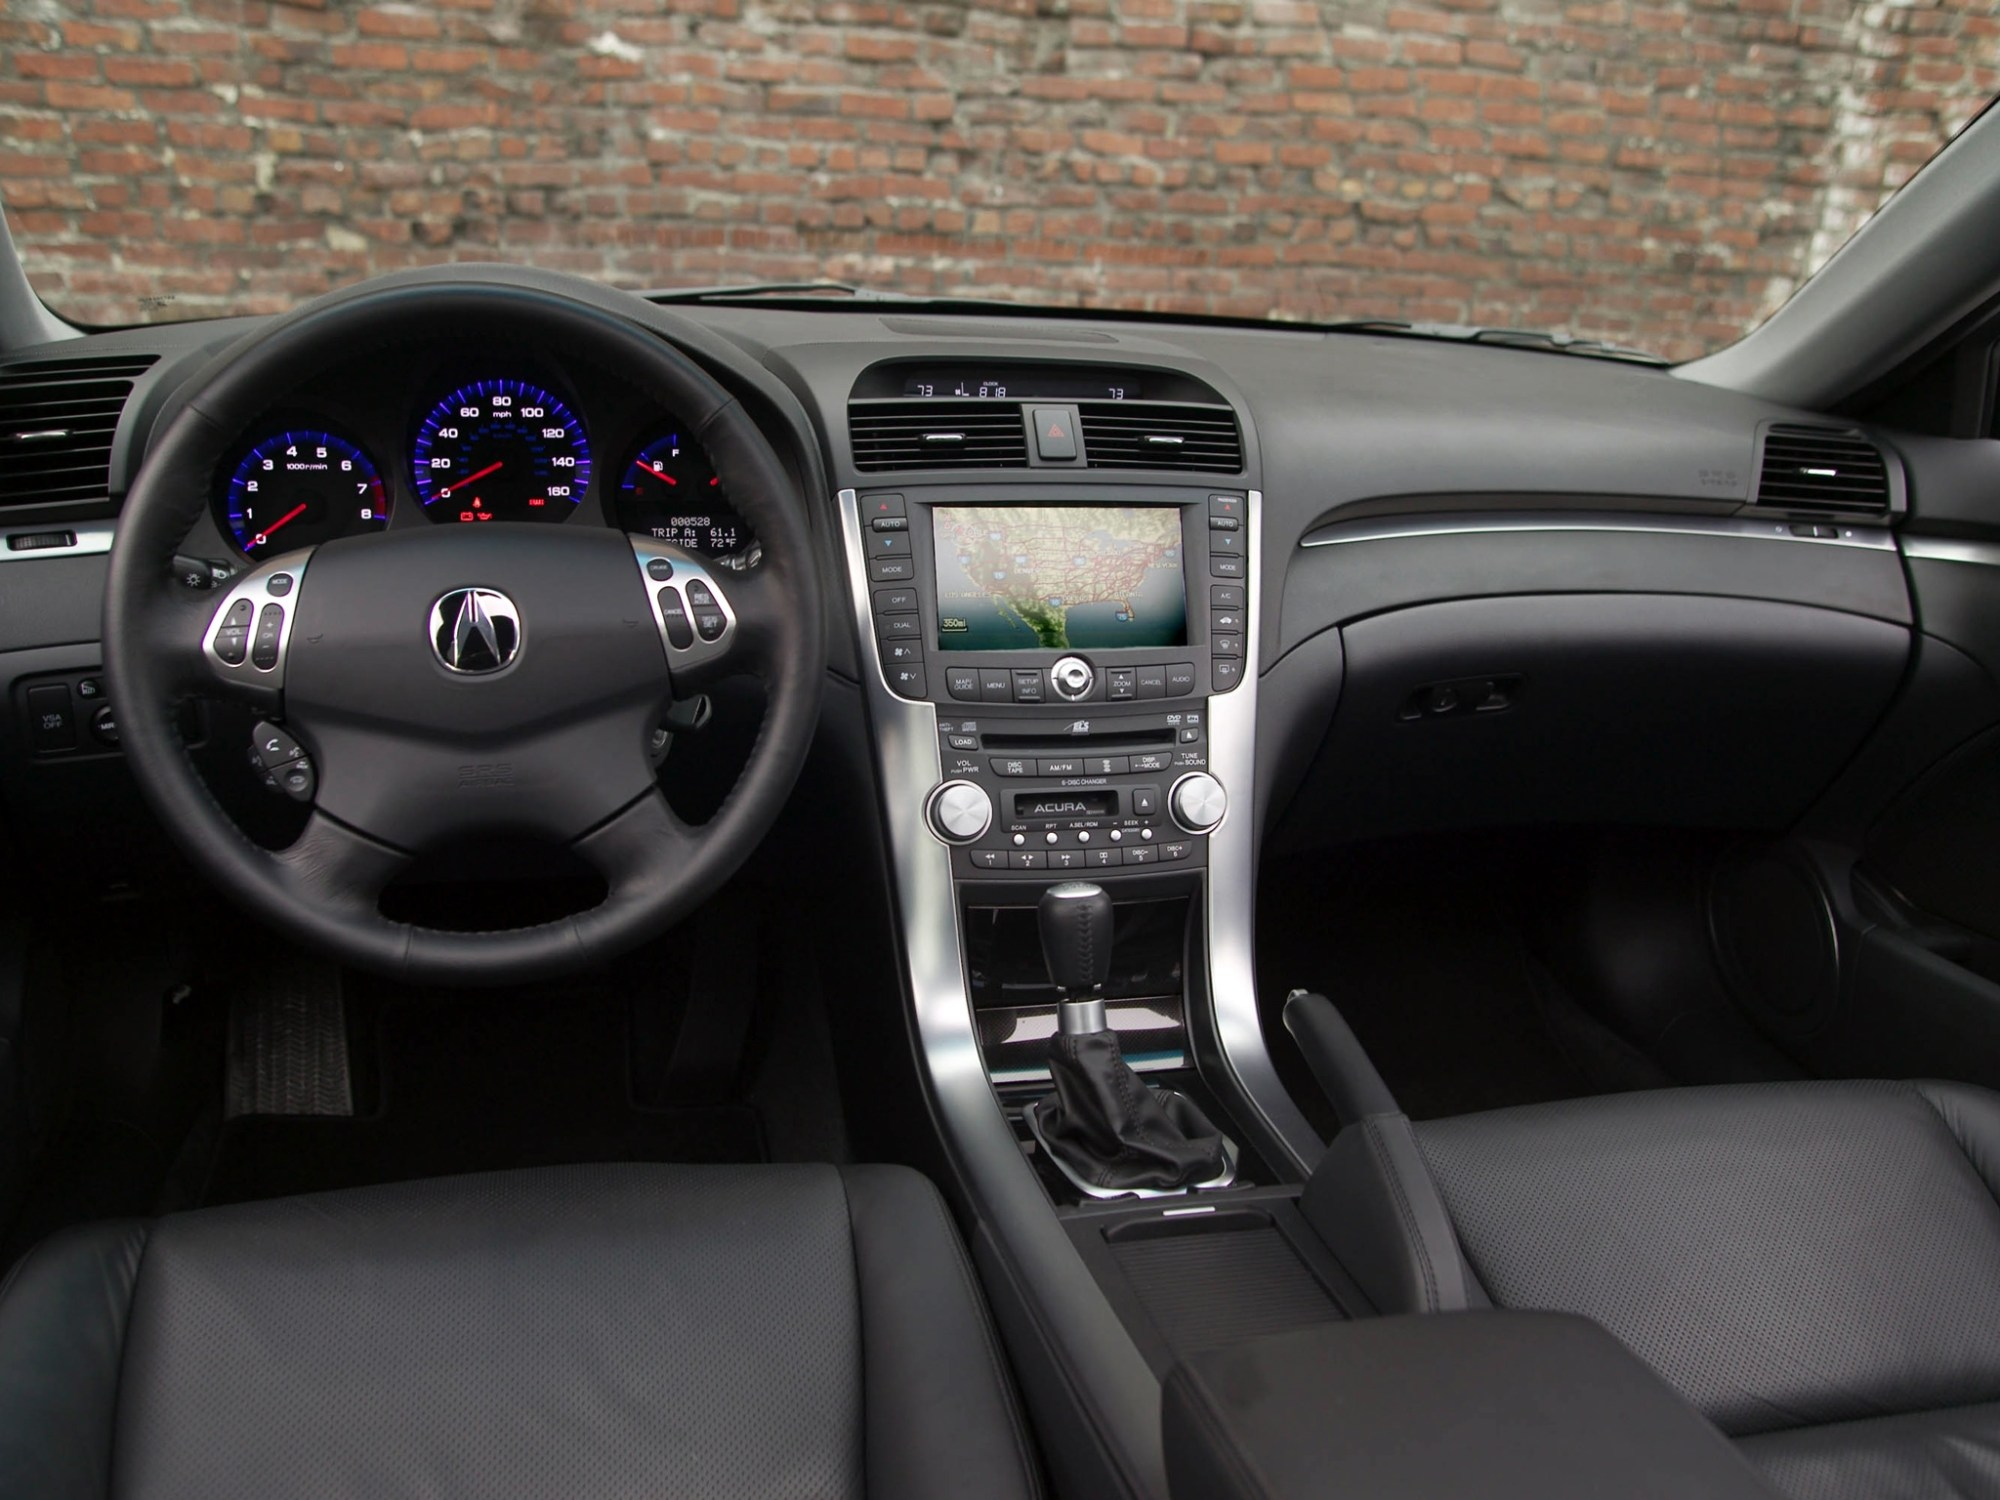 hight resolution of wallpaper interior mercedes benz speedometer steering wheel sedan acura tl 2004 salon land vehicle automobile make luxury vehicle family car